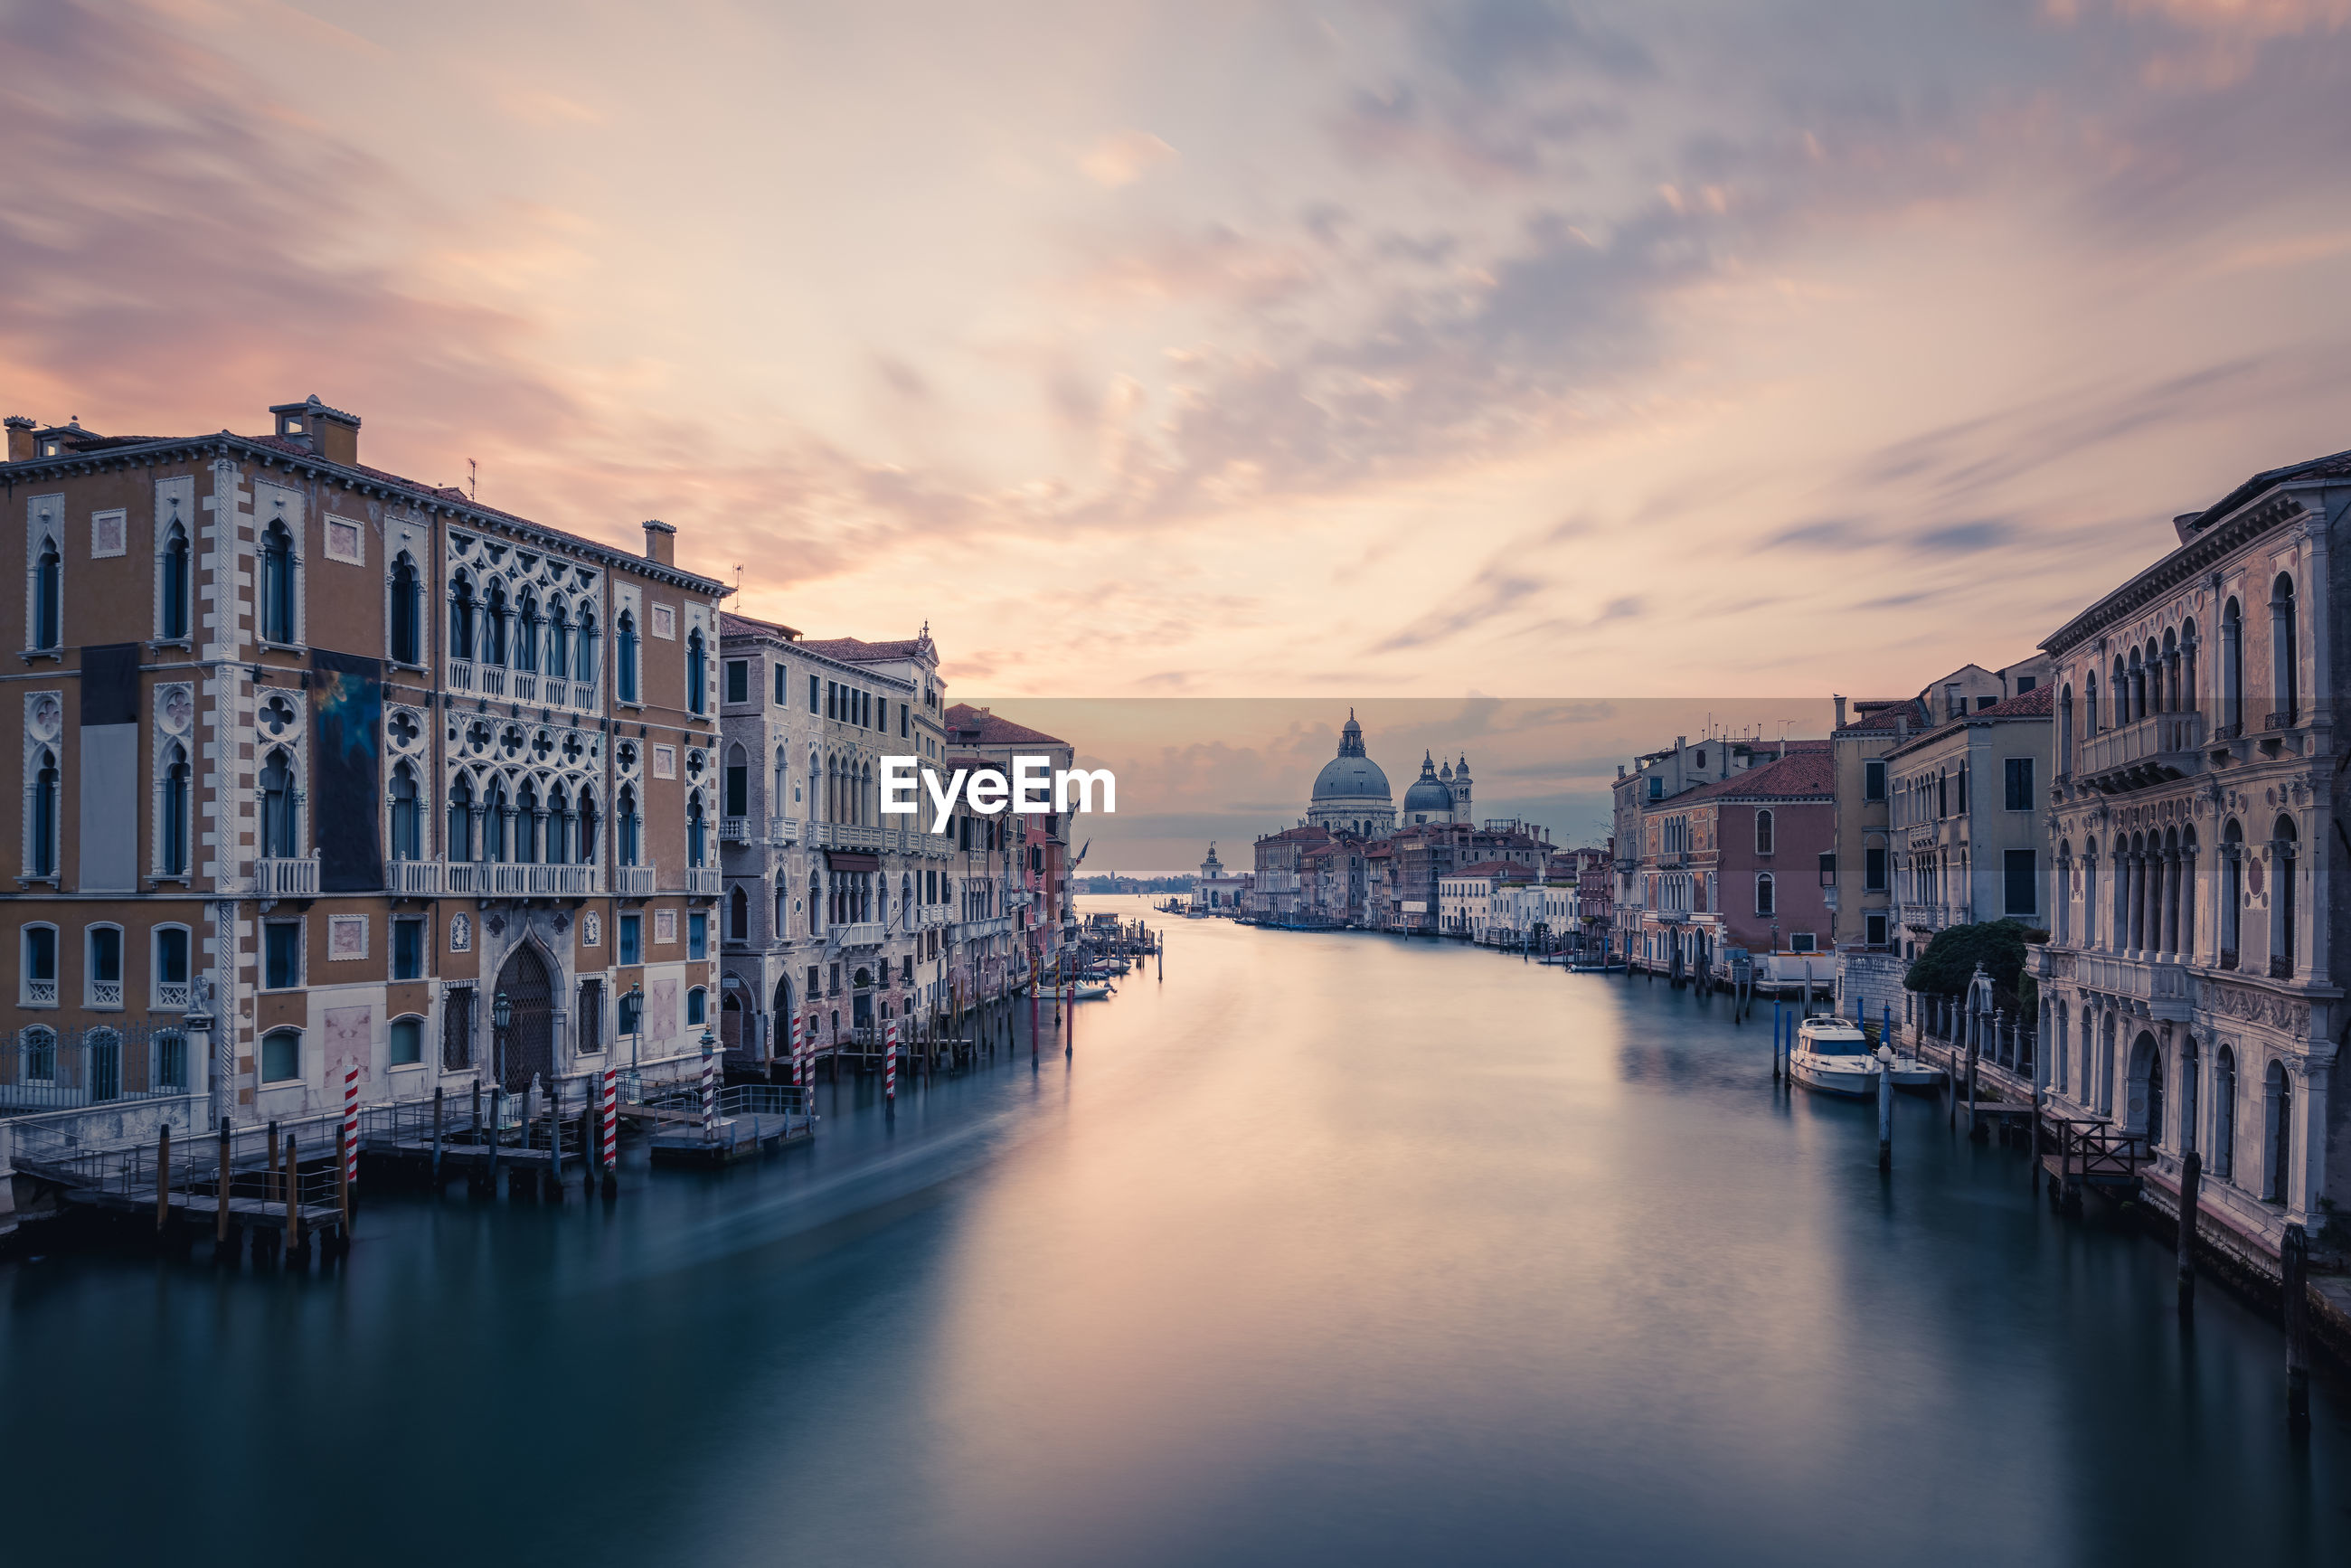 Grand canal against sky during sunset in city